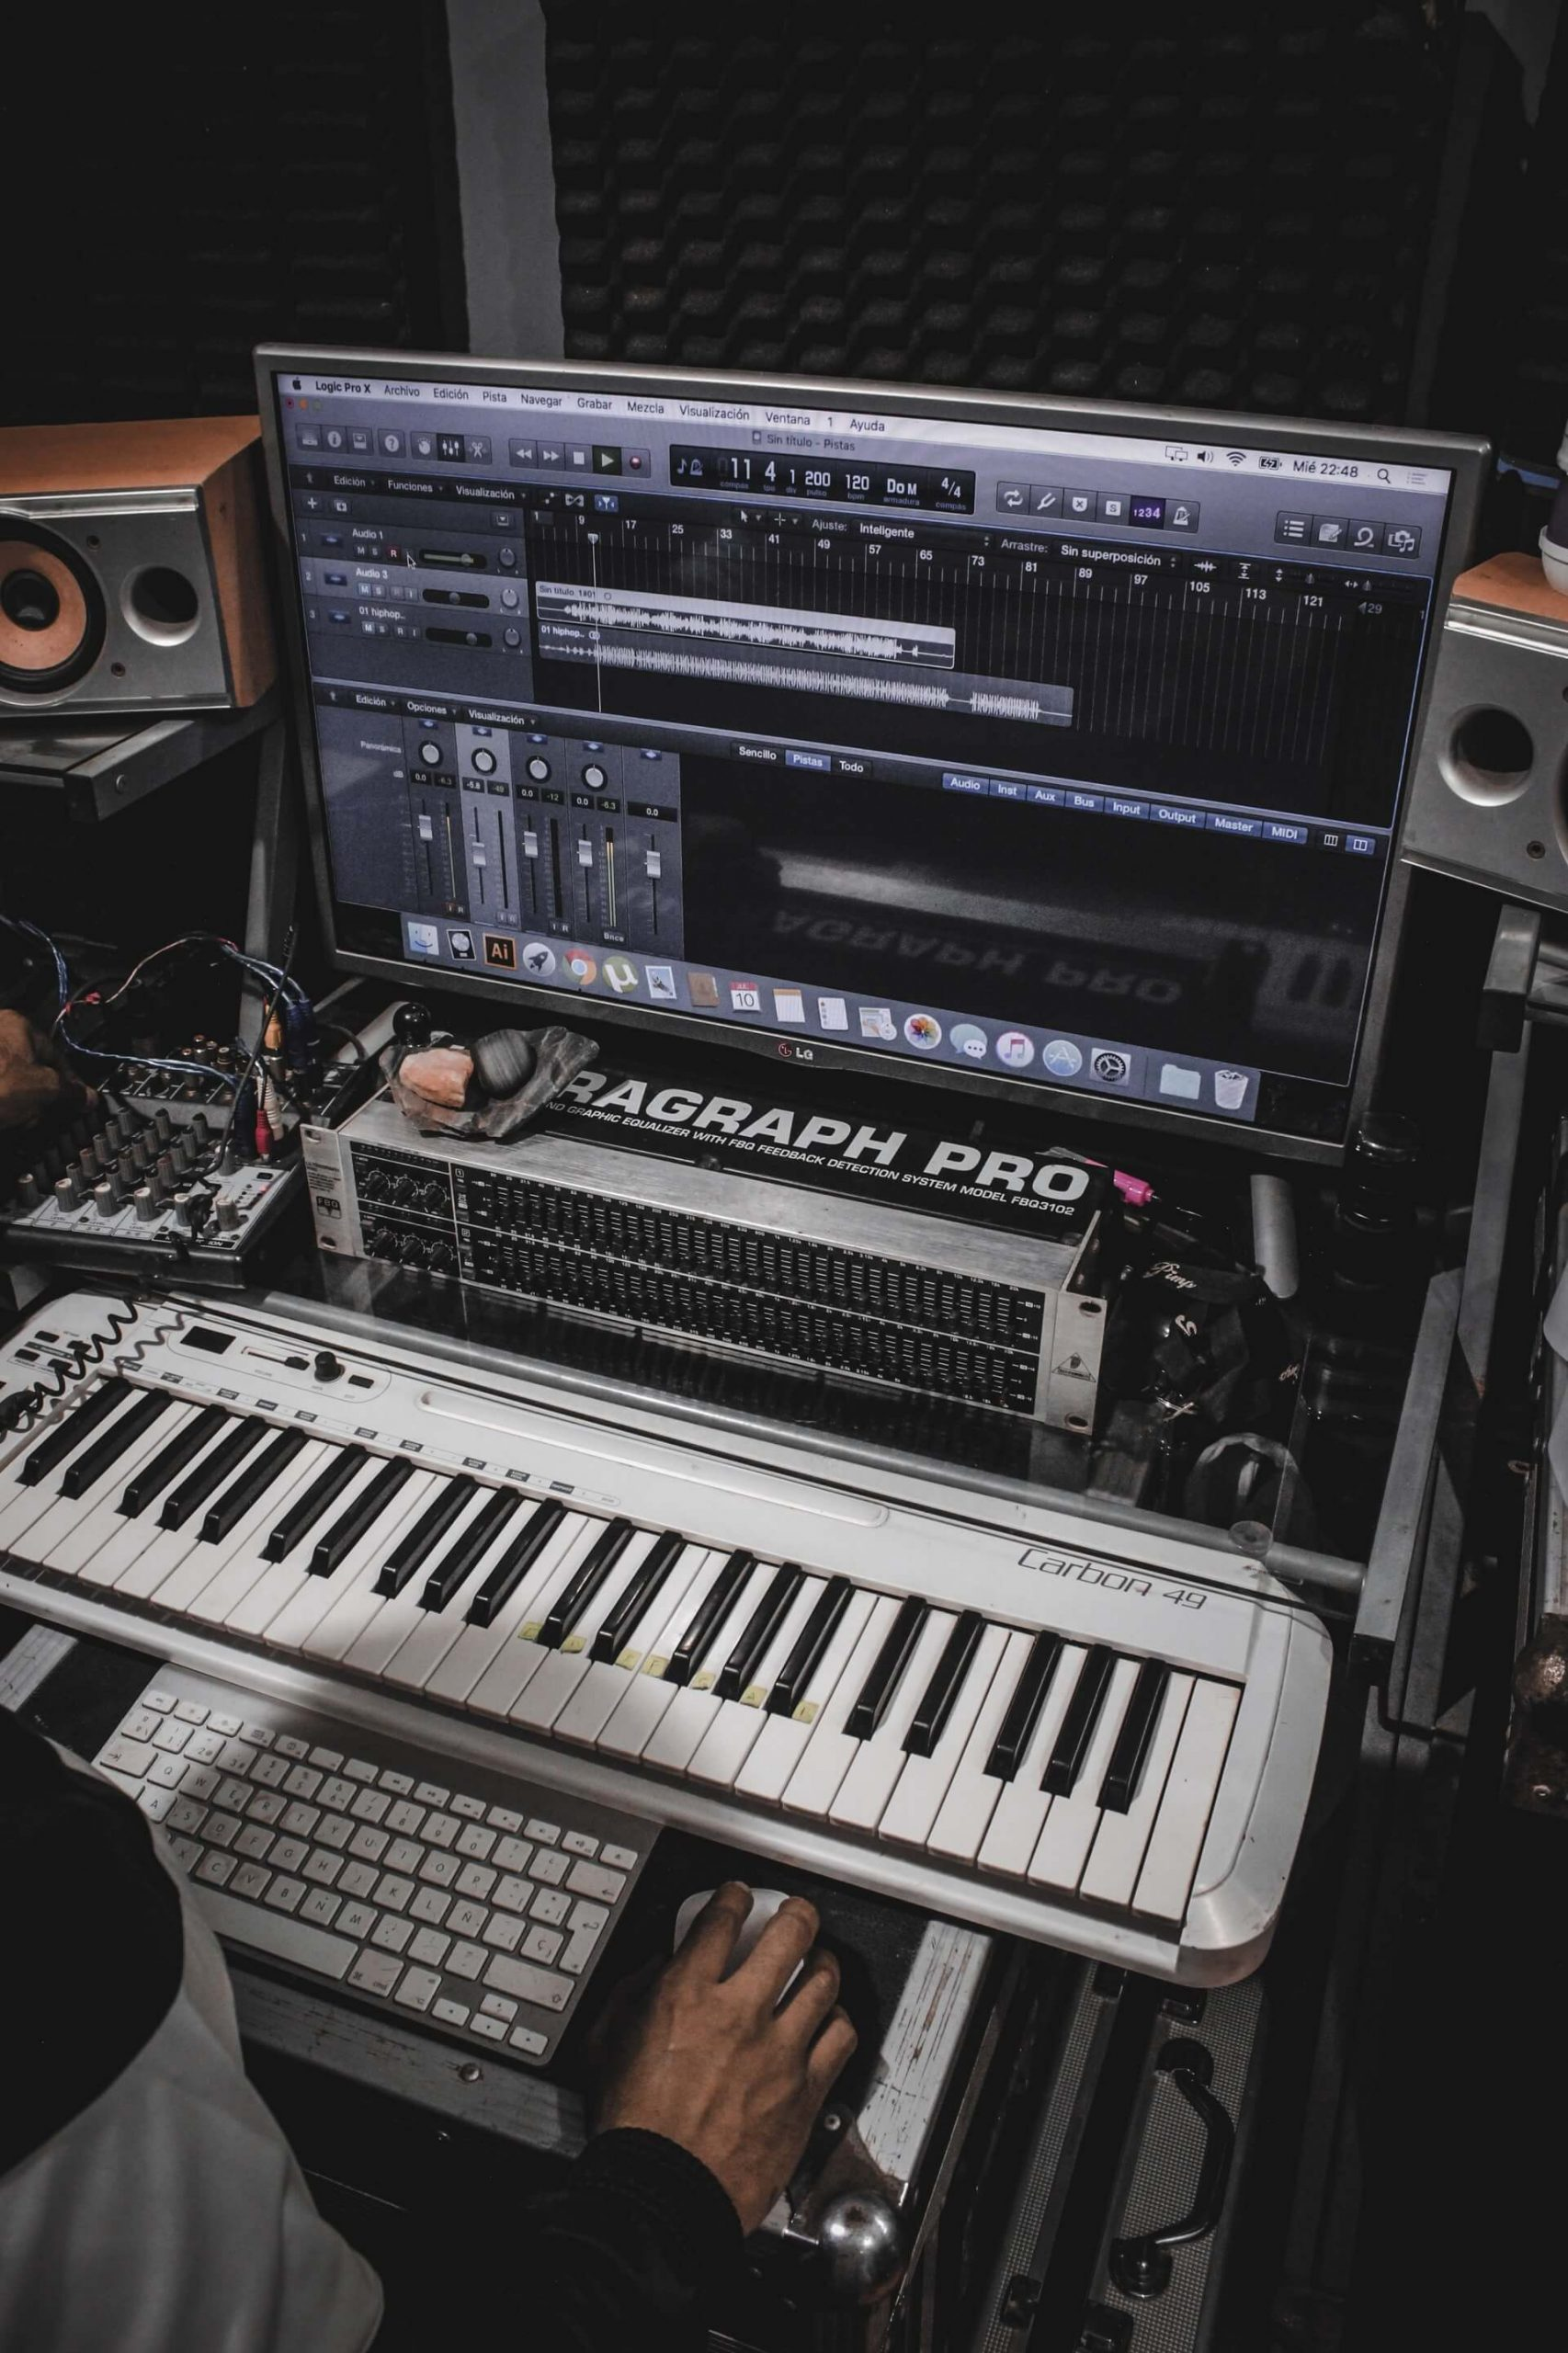 Best Digital Piano Under $1500 for 2020 Review